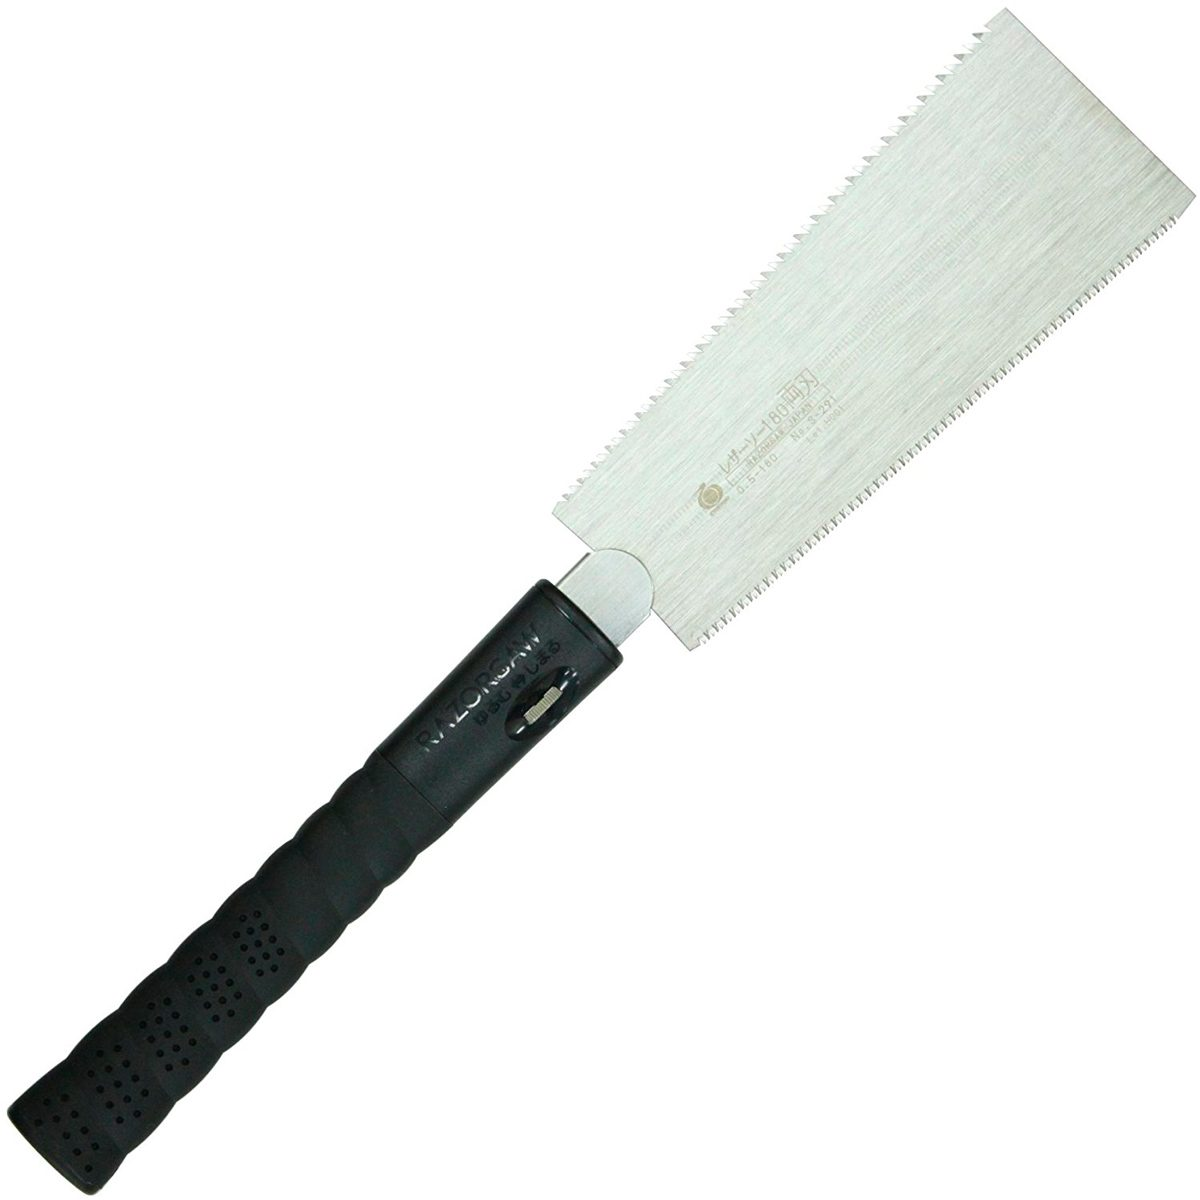 Hand Saw 16 inches Small Wood Saw Handyman Carpenter Builder Cutting Tool Home